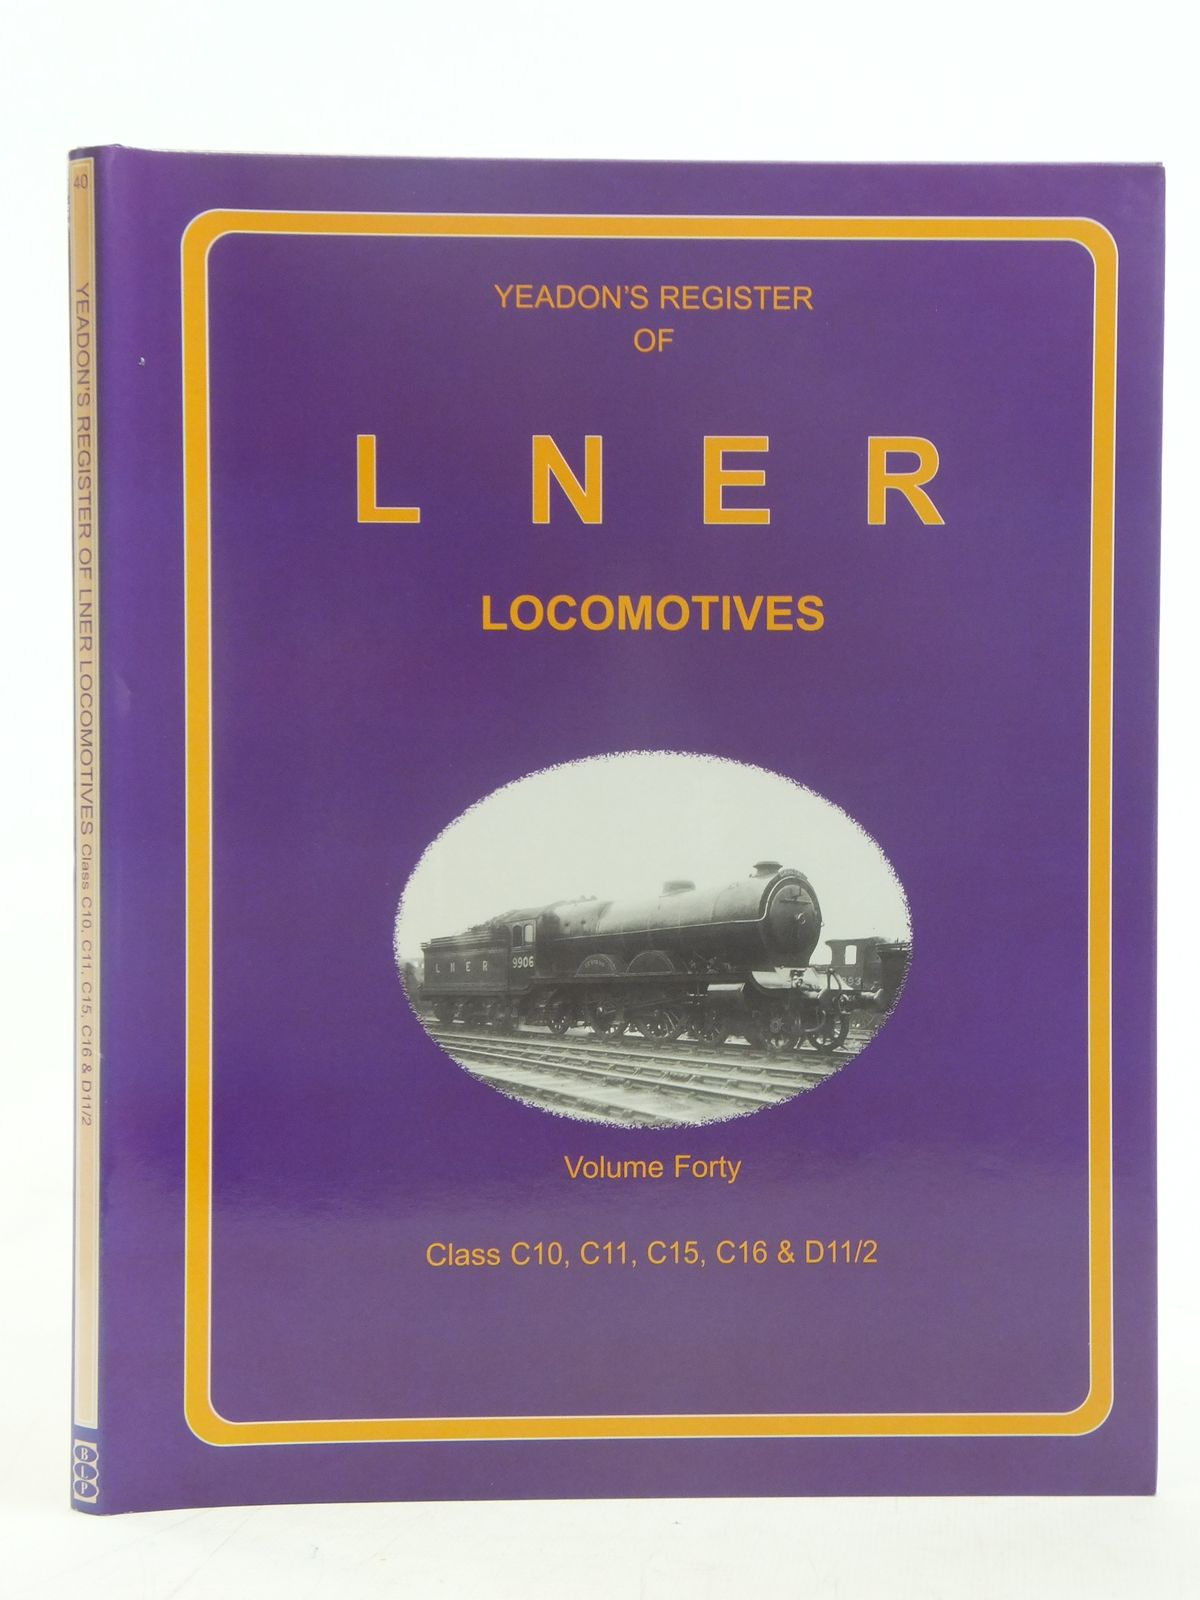 Photo of YEADON'S REGISTER OF LNER LOCOMOTIVES VOLUME FORTY published by Book Law Publications, Challenger Publications (STOCK CODE: 1606929)  for sale by Stella & Rose's Books